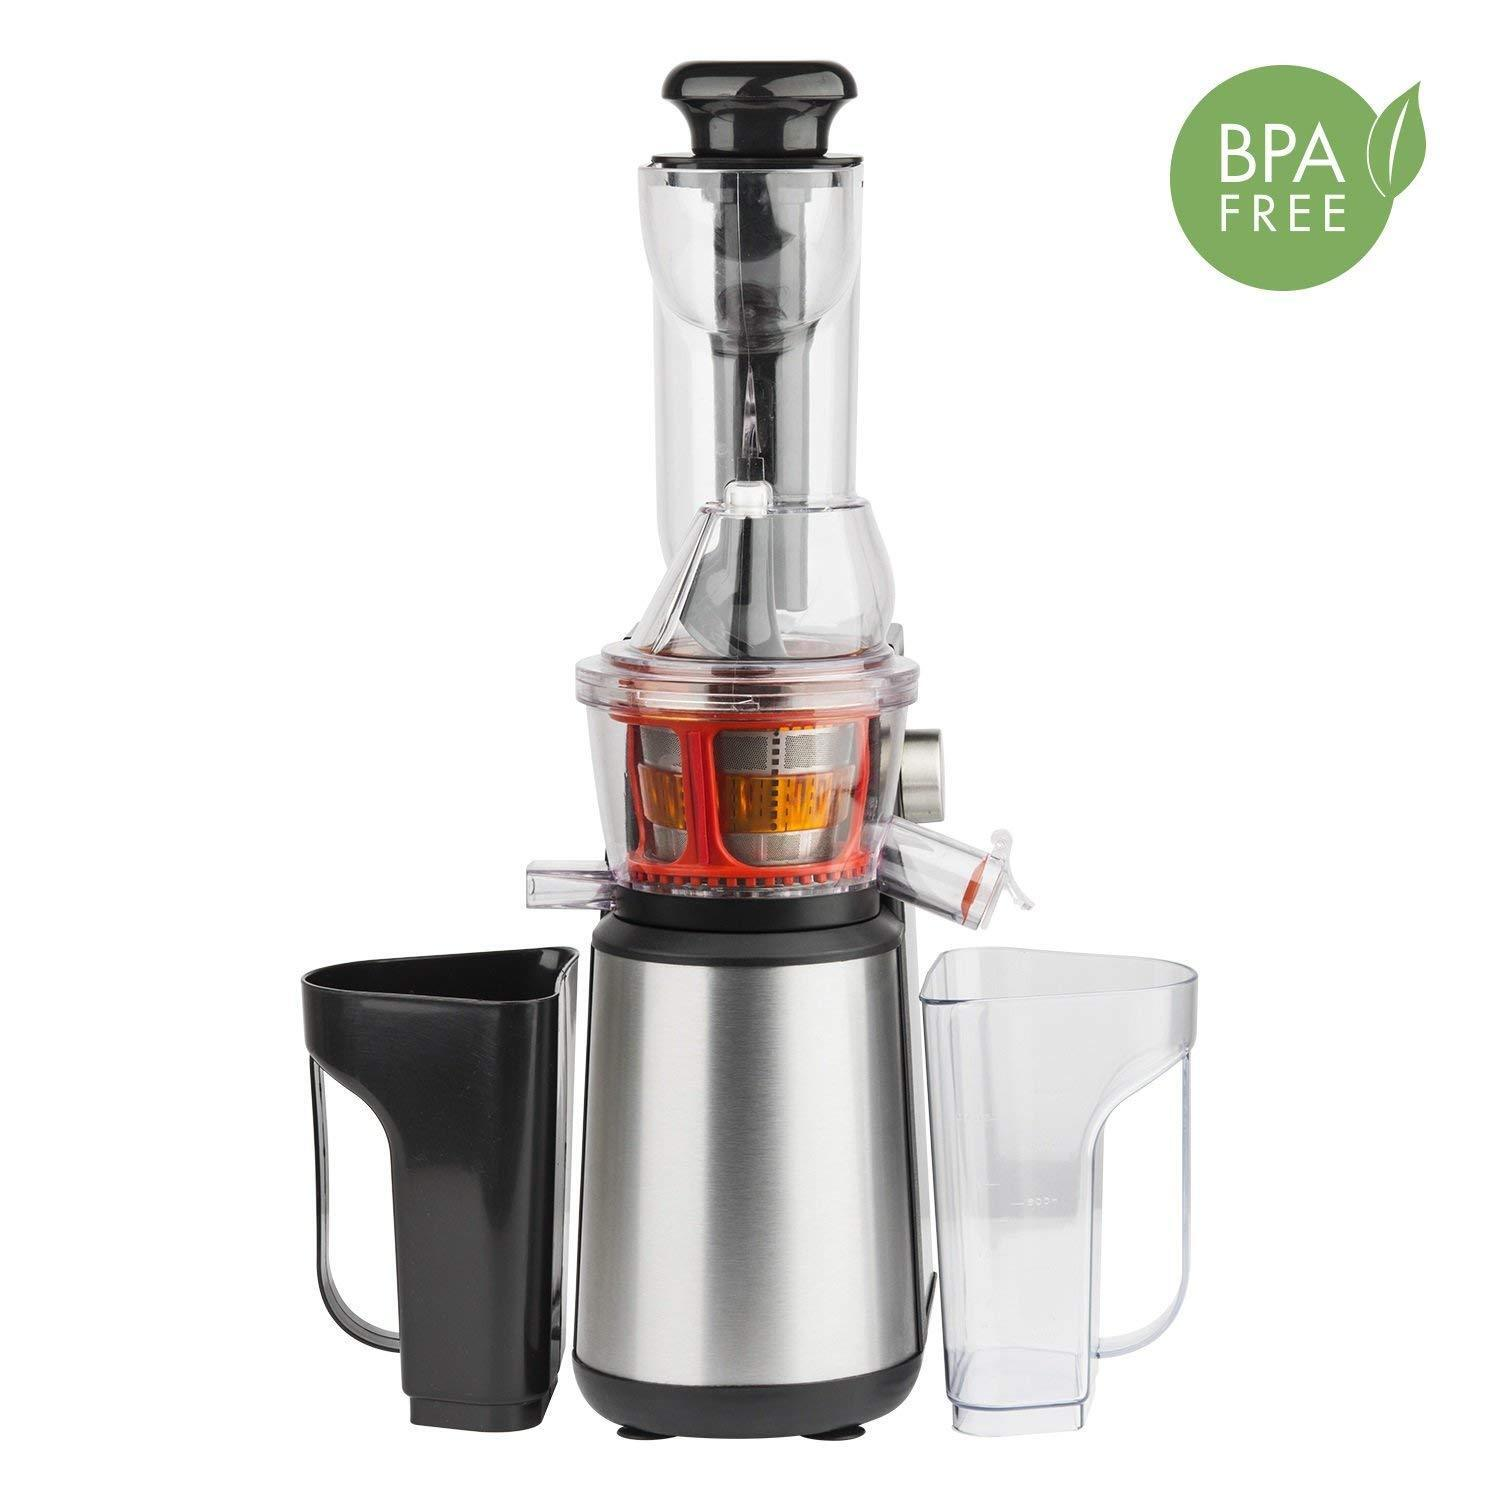 H.Koenig Gsx18 - Blender for Fruit and Vegetable Pressing on Cold 400 W, 33.8oz